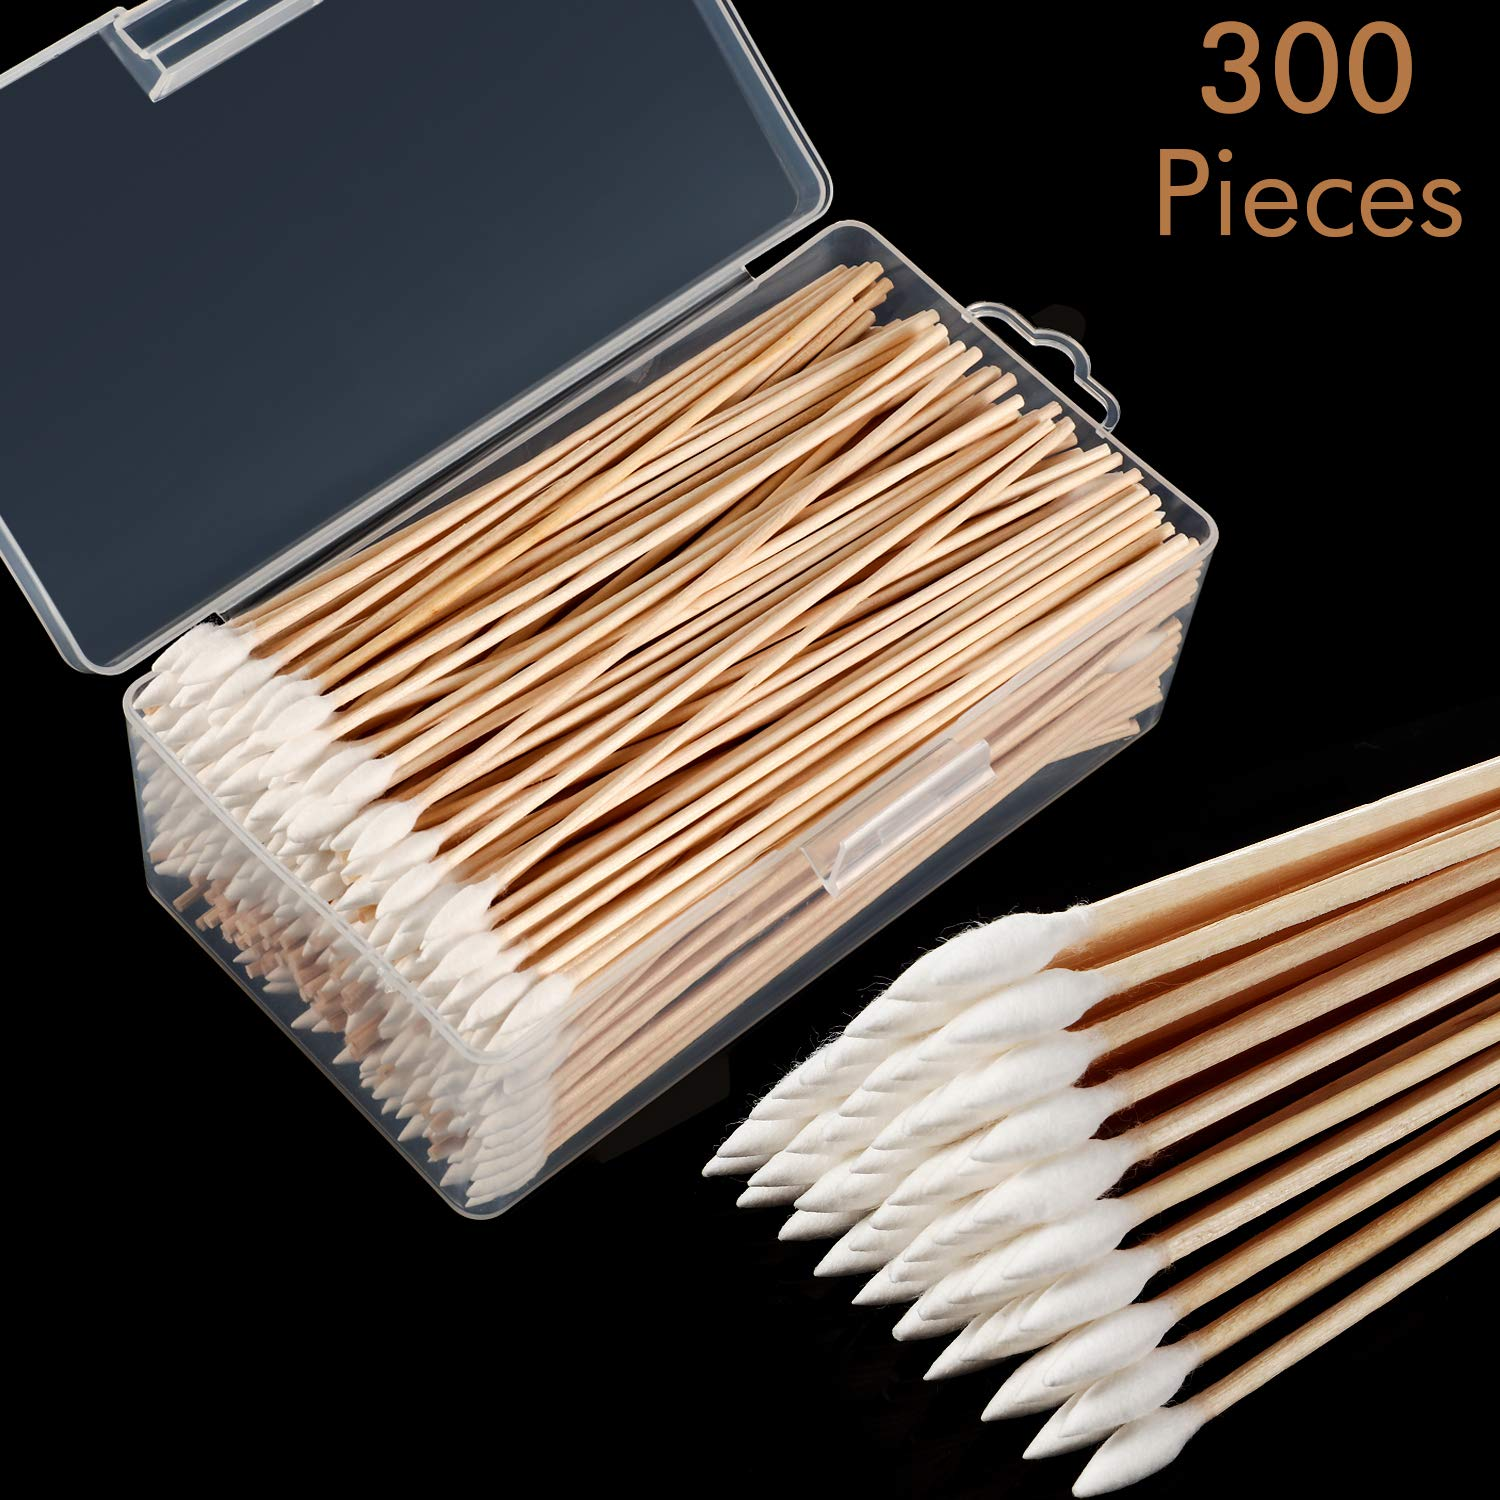 Norme Cotton Cleaning Swabs 6 Inch Caliber Cleaning Swabs Single Cuspidal Tip with Wooden Handle for Jewelry Ceramics Electronics in Storage Case (Pointed Tip) by Norme